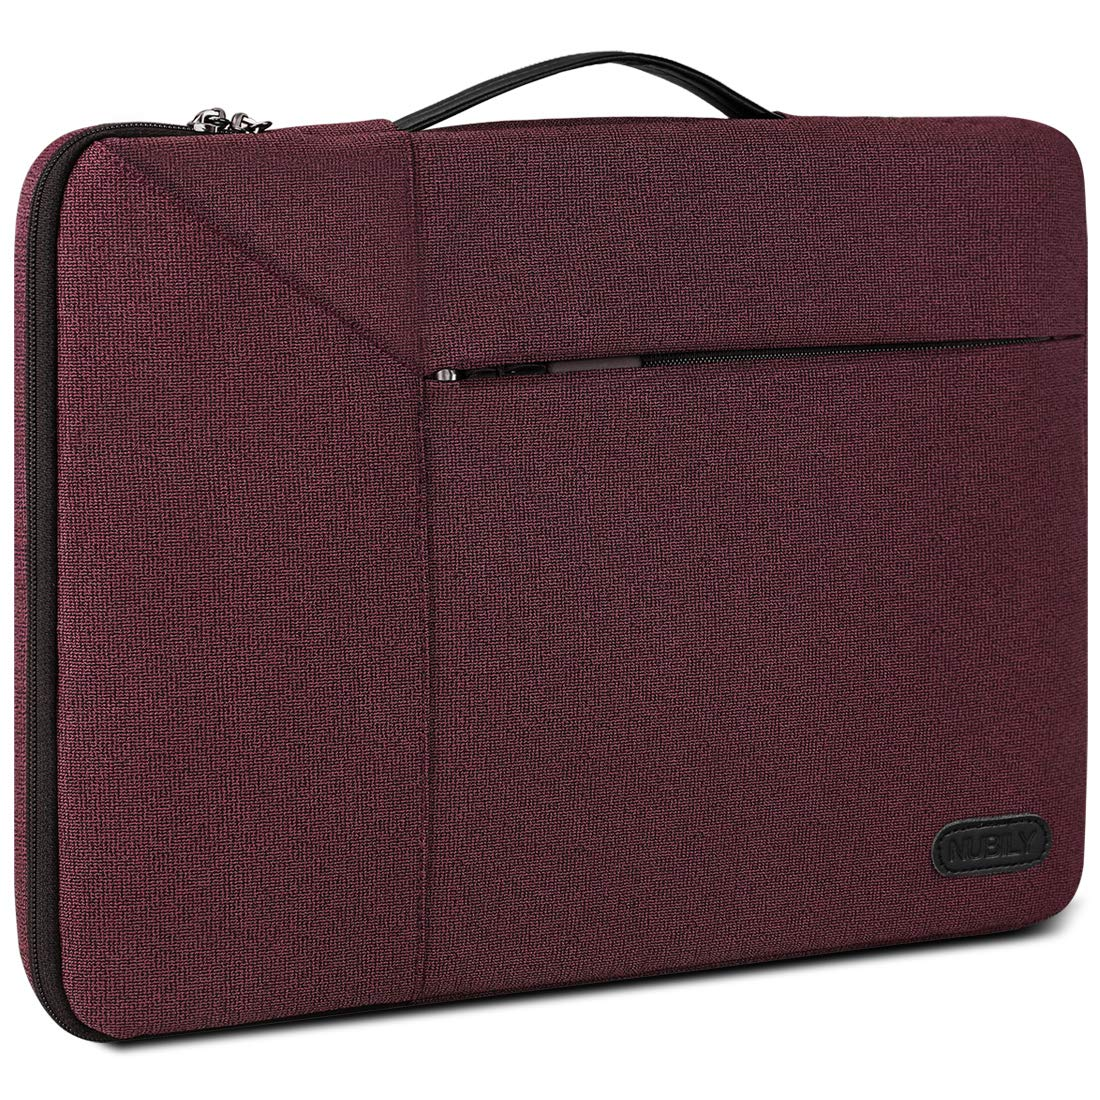 13-14 Inch Laptop Sleeve Case Waterproof 360 Protective Laptop Sleeve Bag Work Business Computer Case for 13 Inch MacBook Air/Pro Notebook Portable Handle Laptop Bag,Wine Red